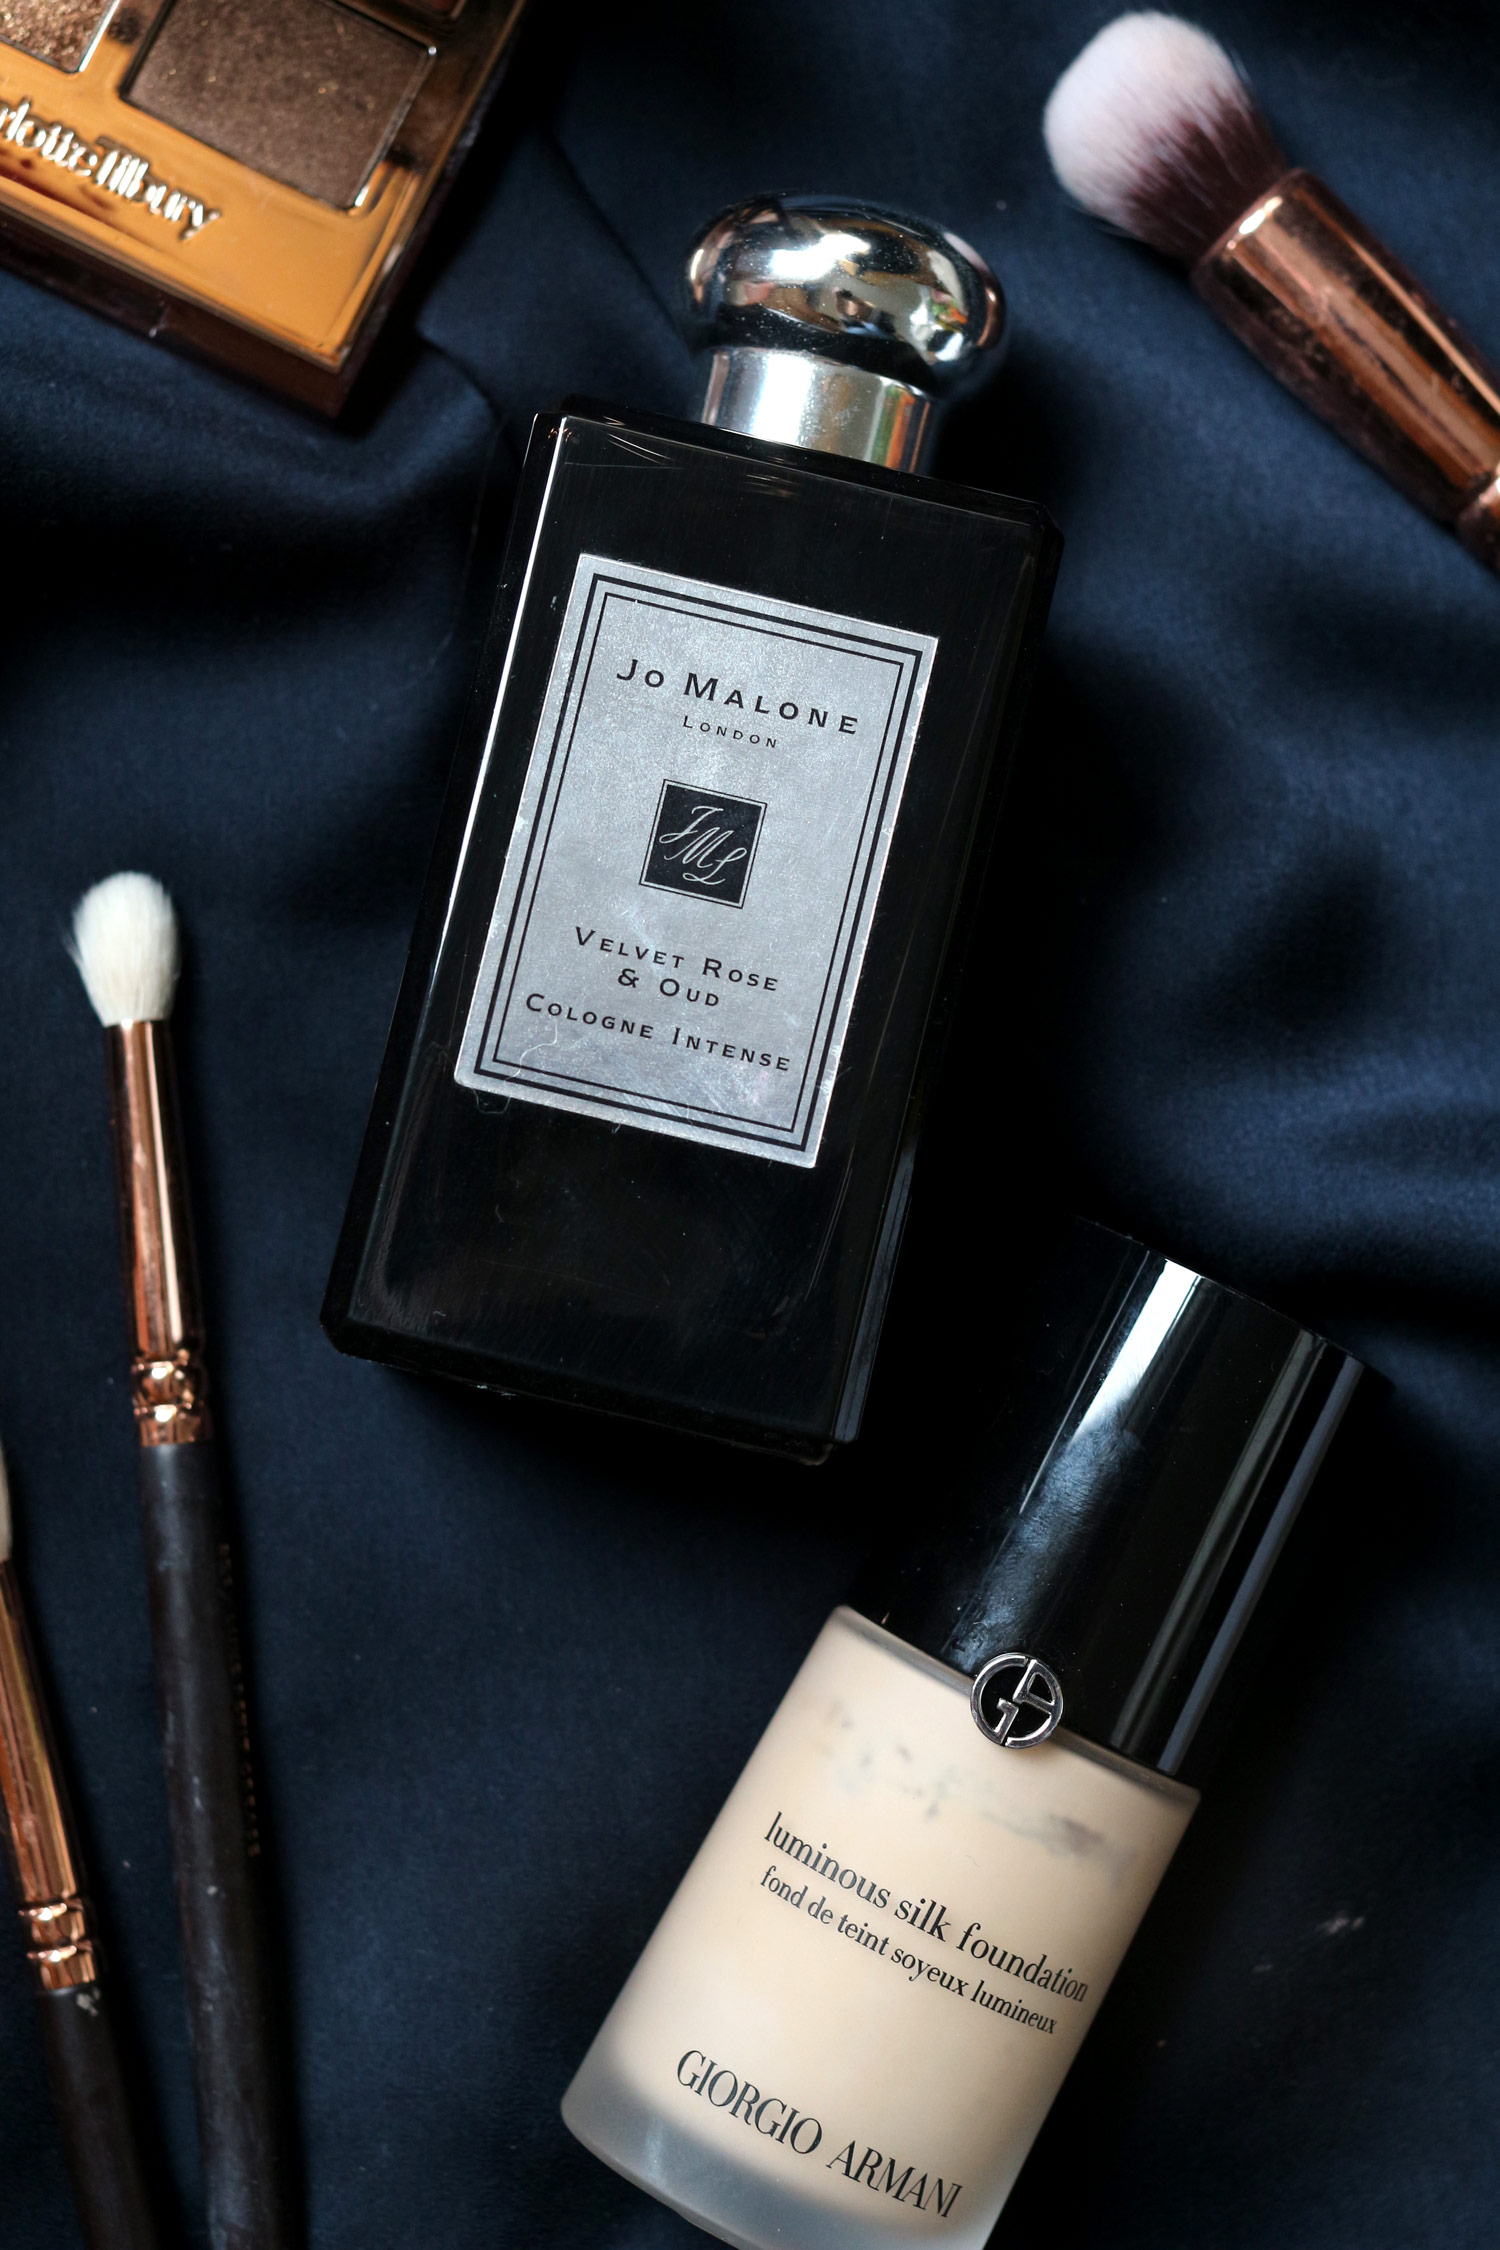 luxurious-purchases-charlotte-tilbury-tom-ford-lipstick-jo-malone-cologne-intense-1